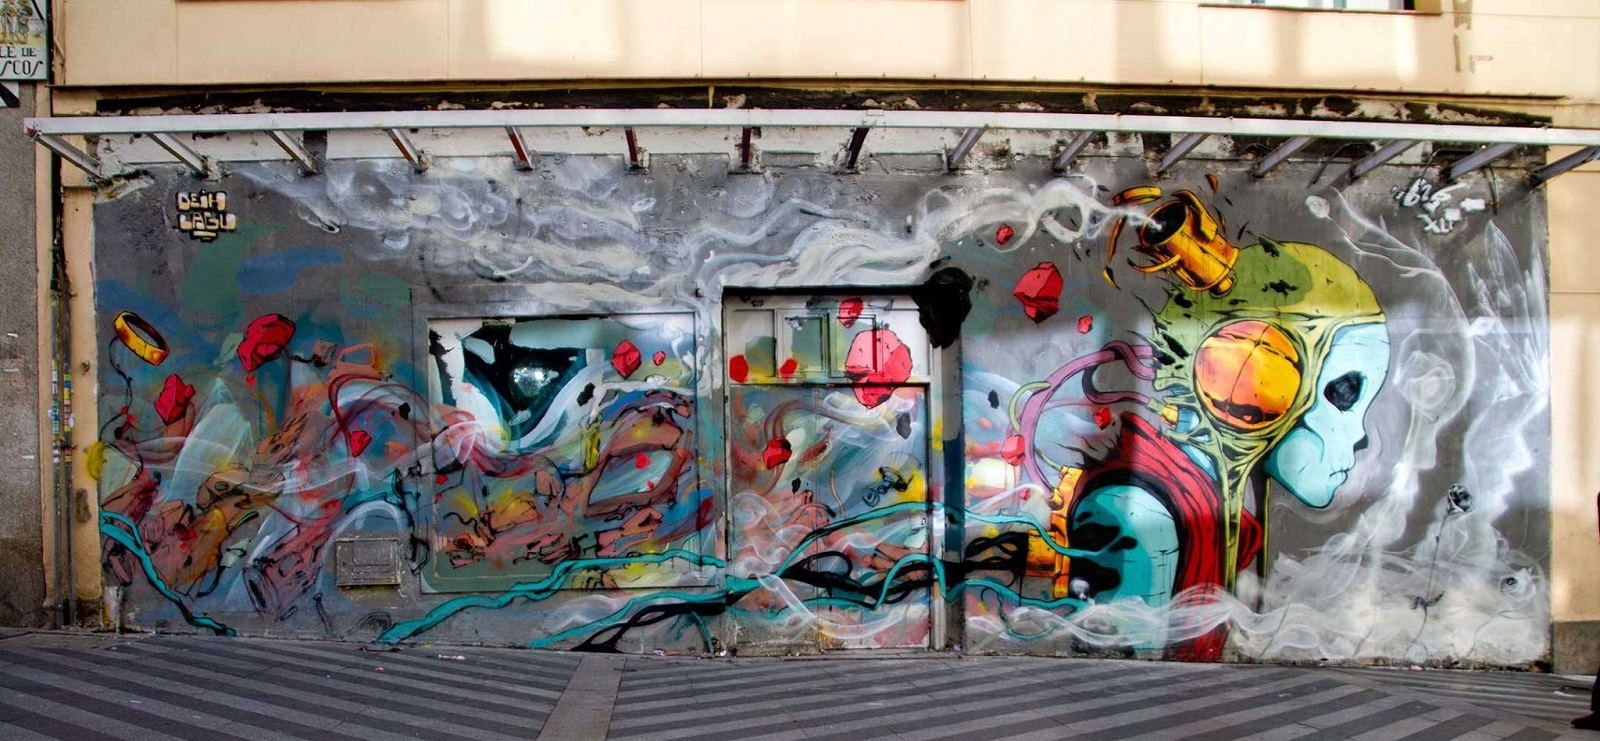 deih-laguna-new-mural-in-madrid-01